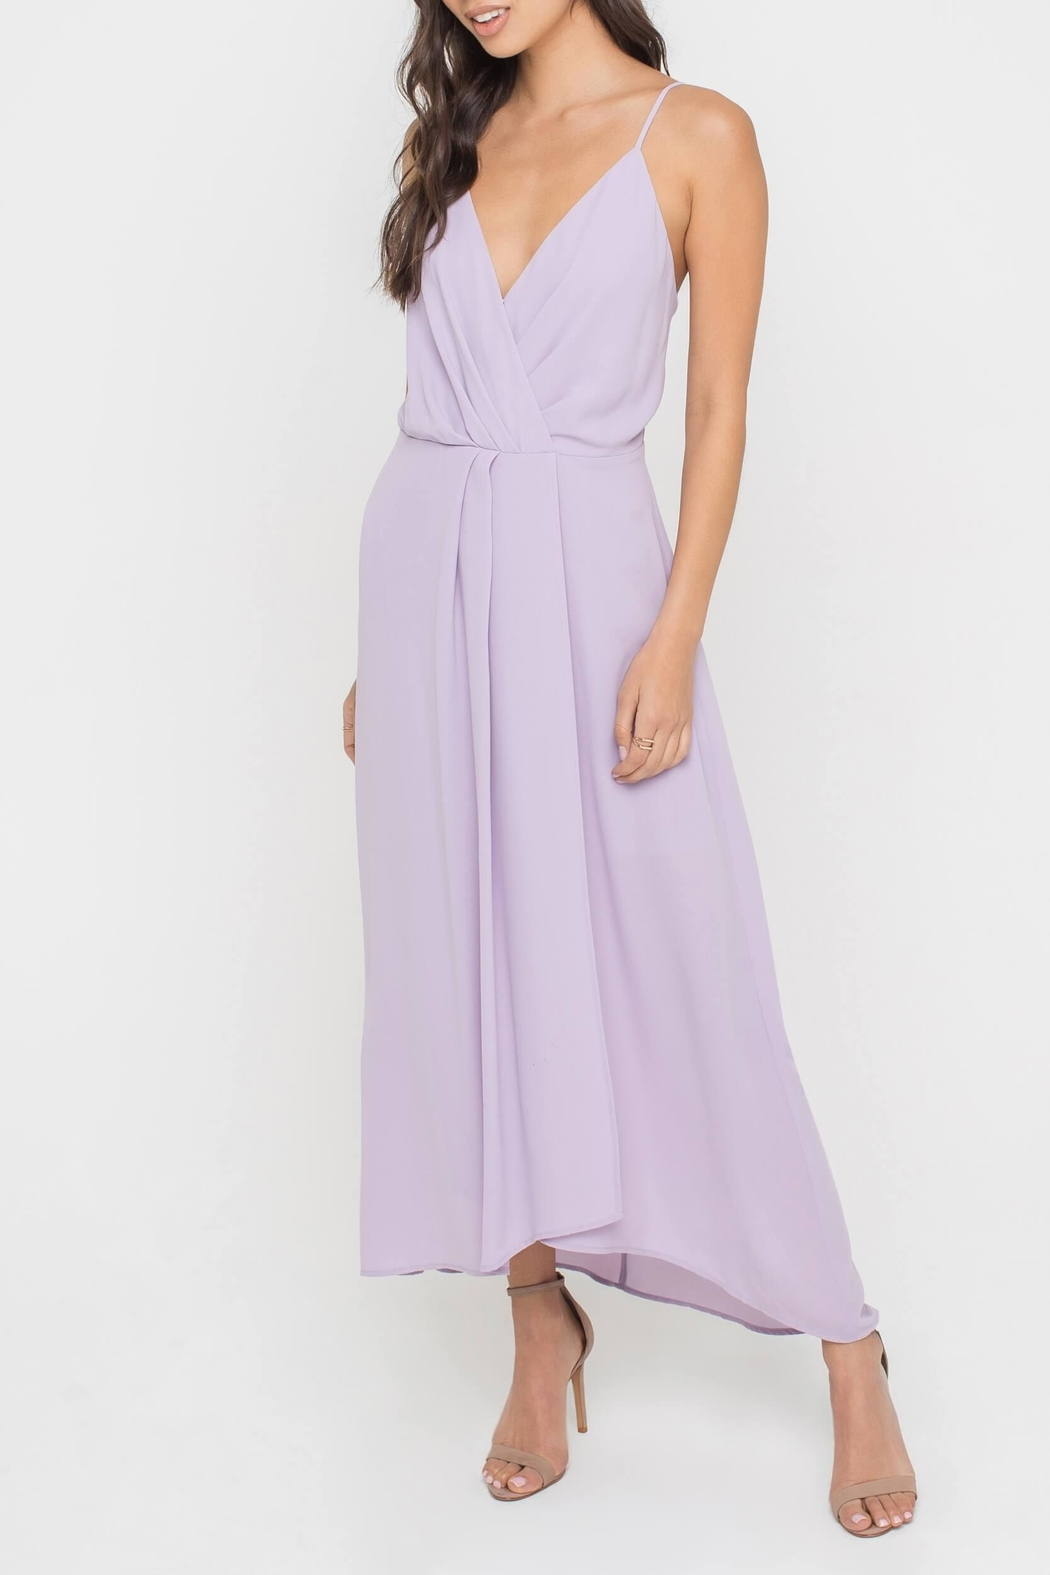 Lush Clothing  Lilac Midi Dress - Front Cropped Image